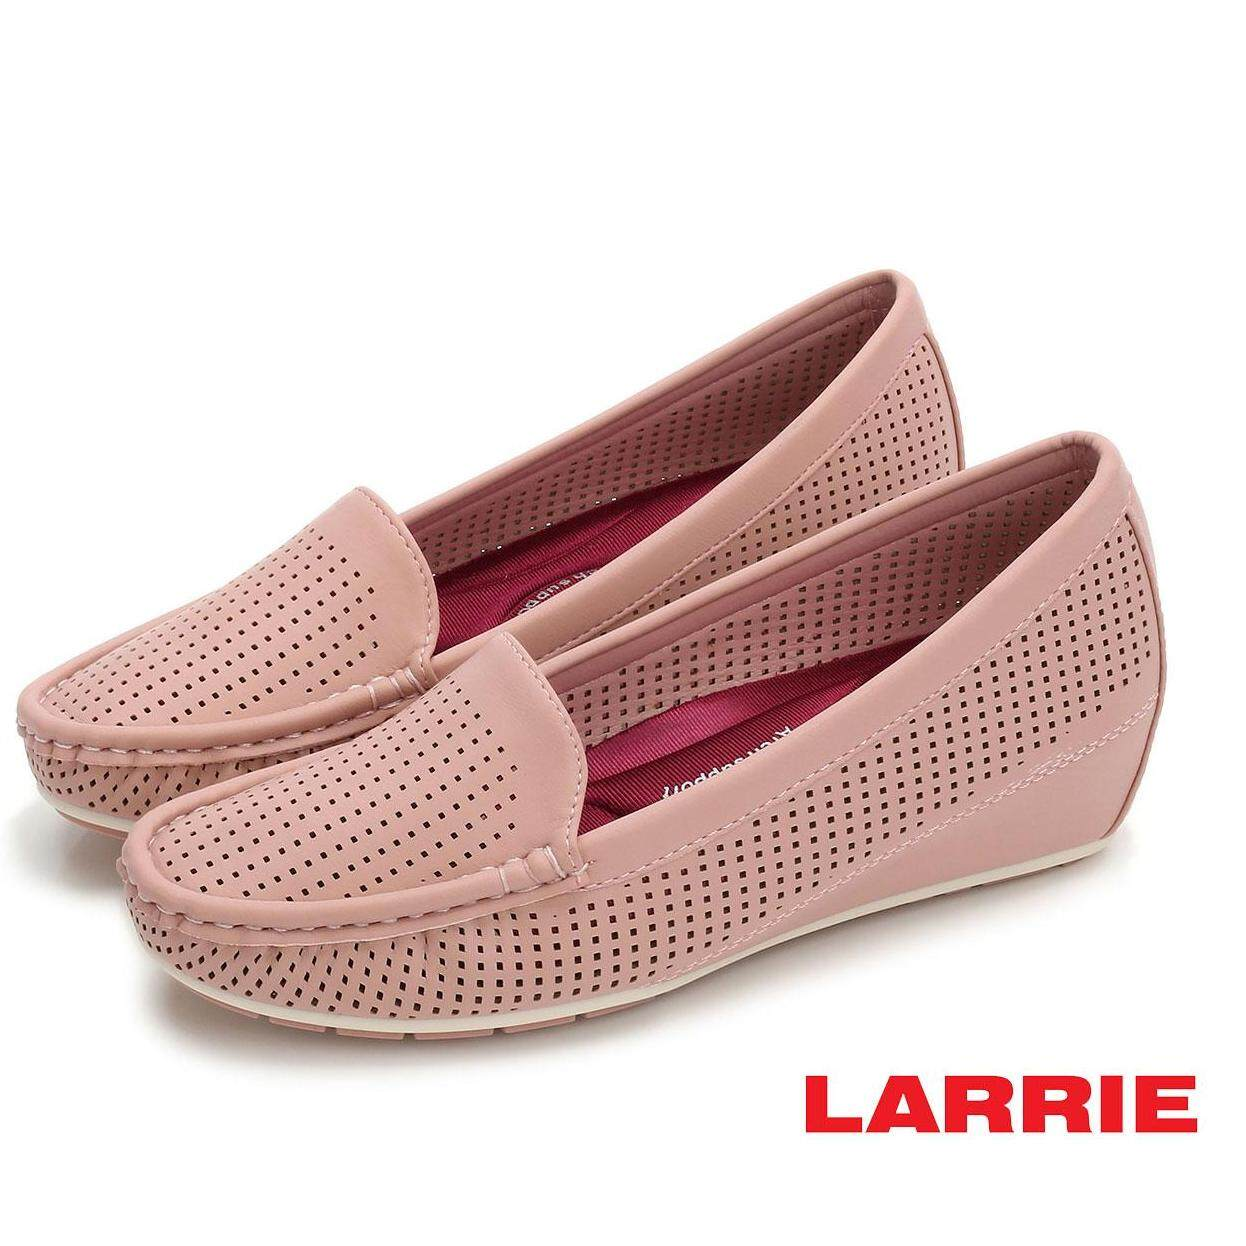 LARRIE Women Low Basic Loafer Wedges - L51901-WS01SV